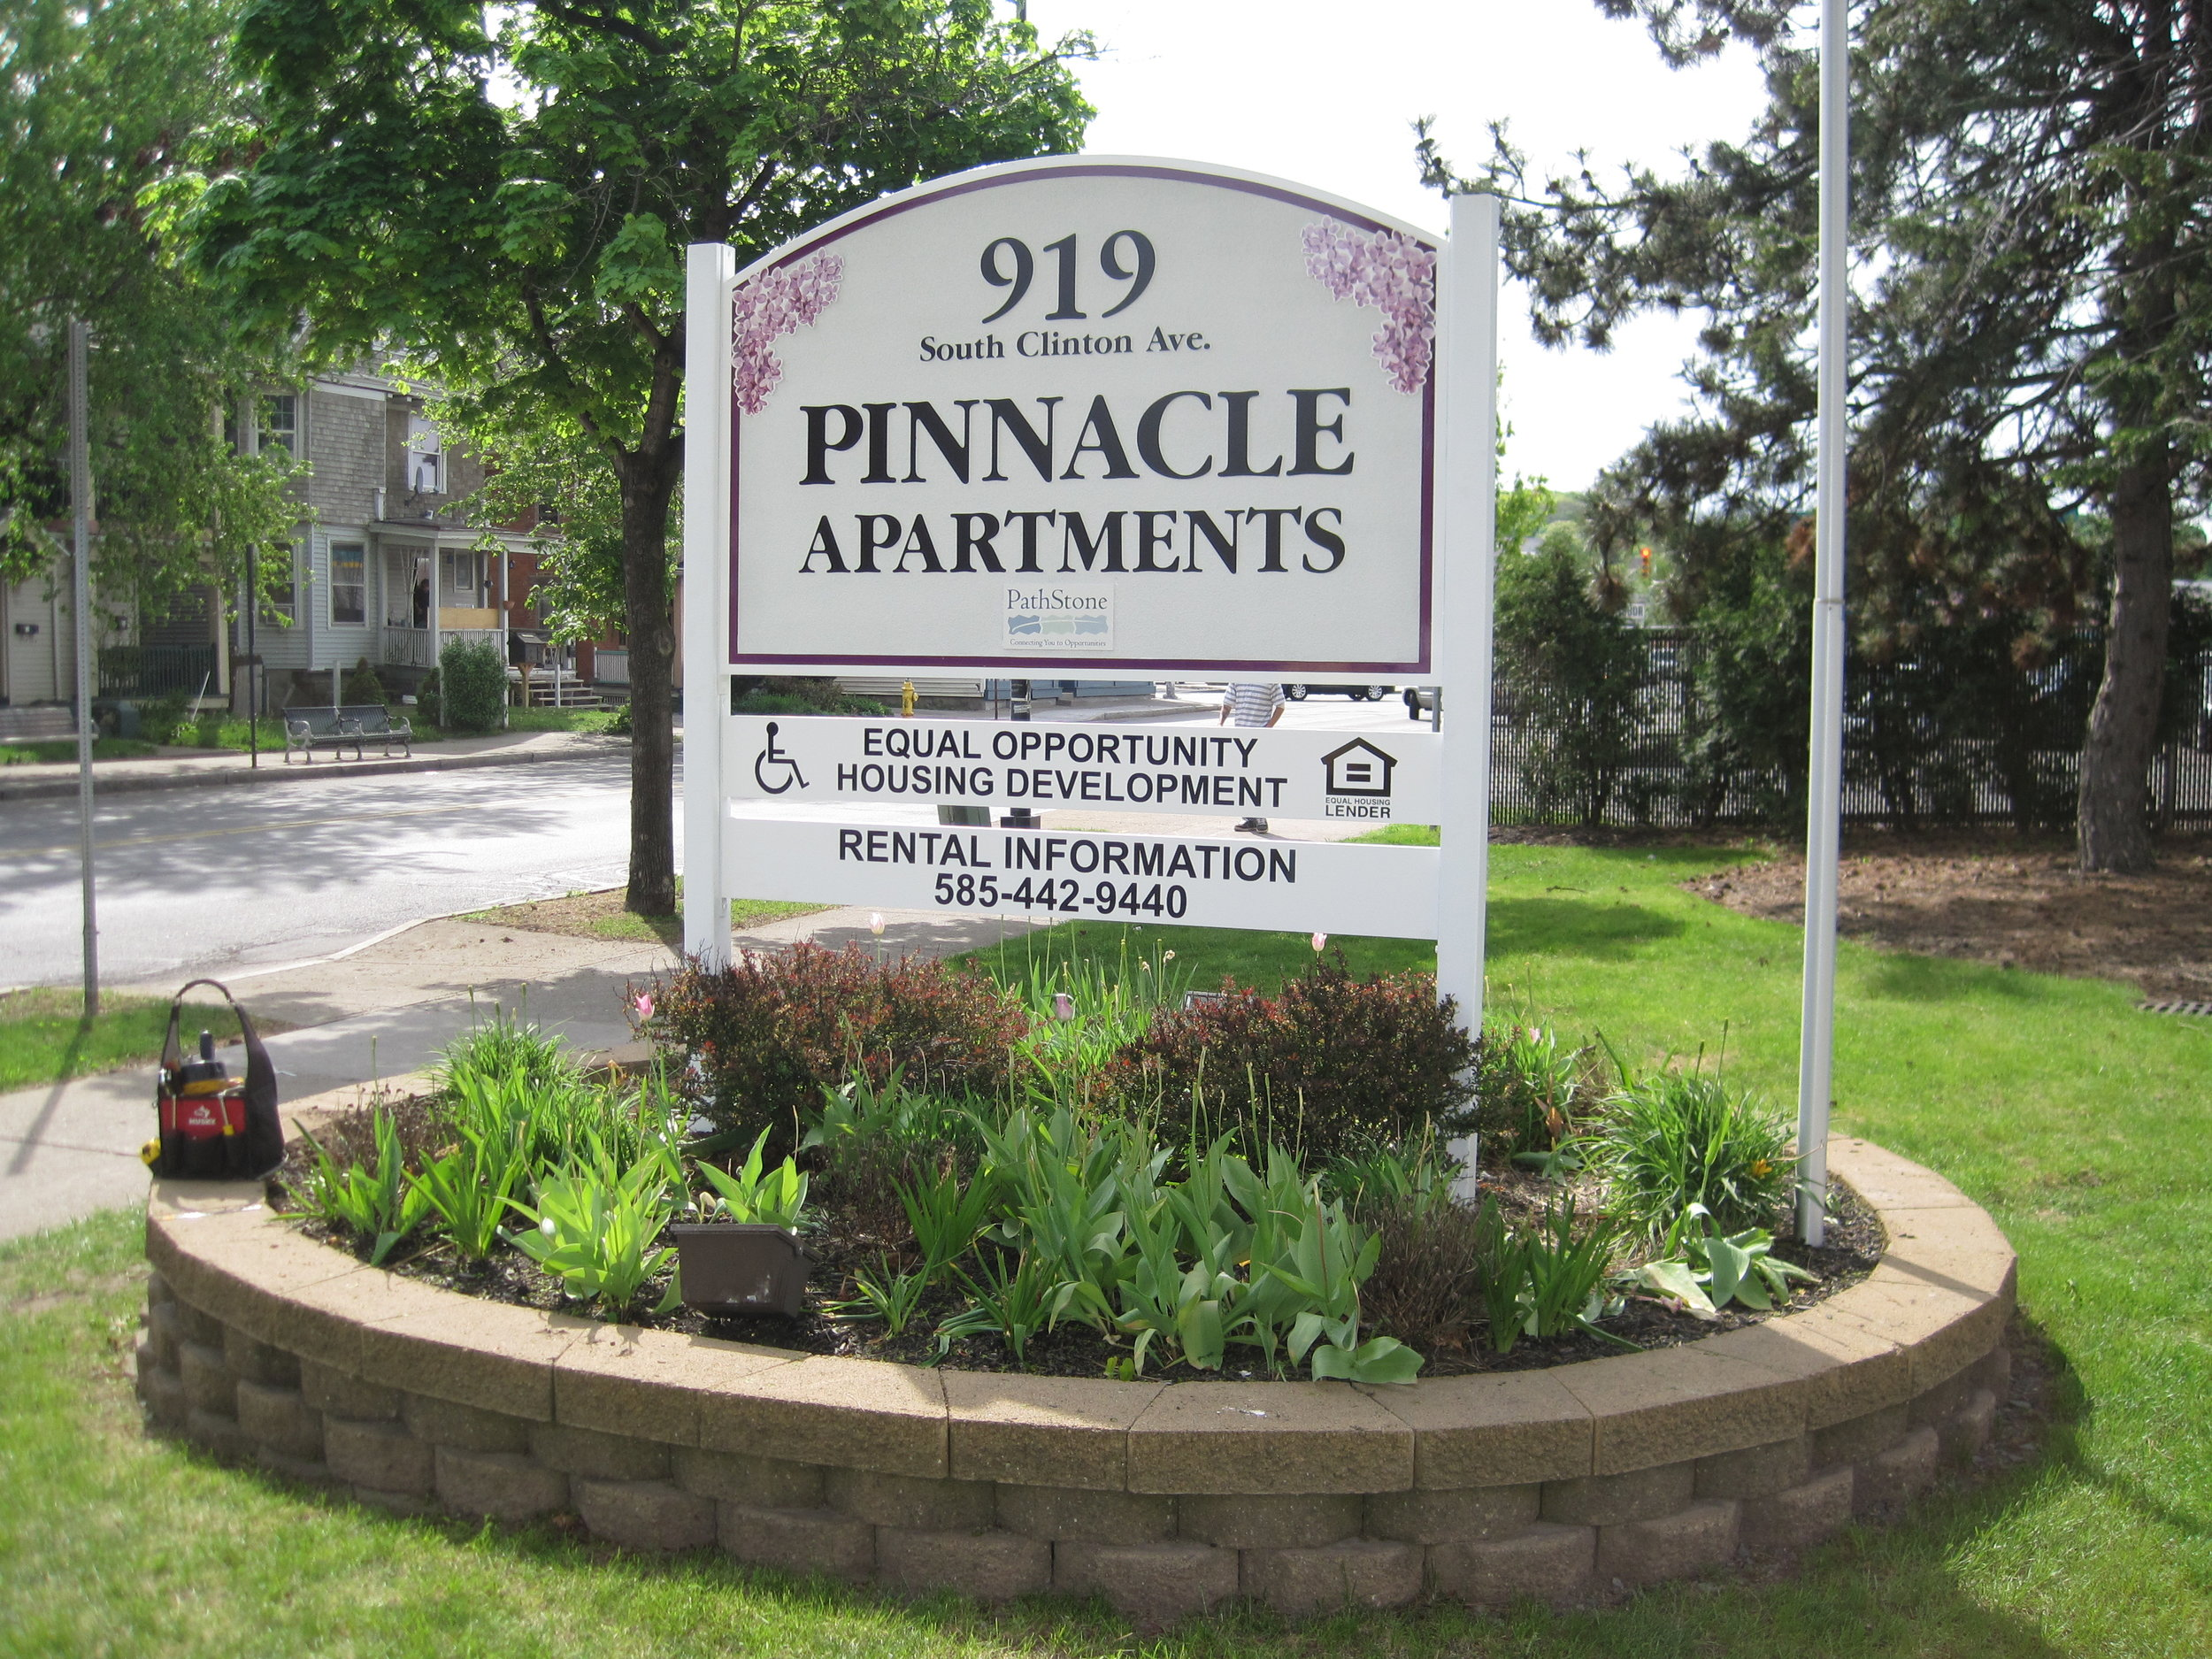 Pinnacle apts HDU.JPG